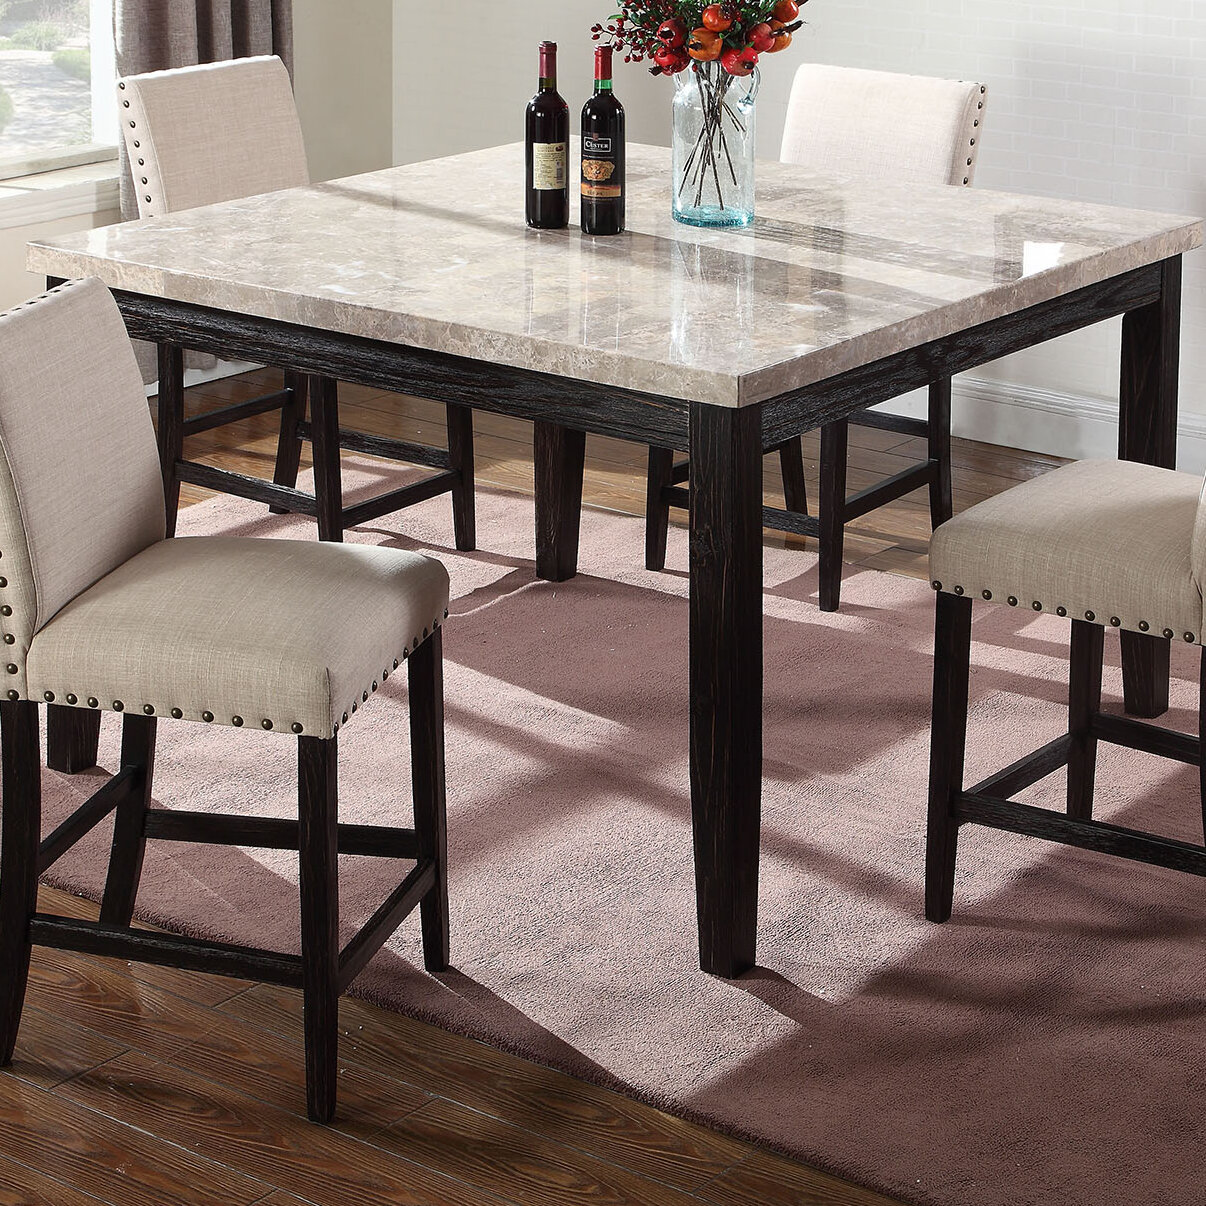 Bon Details About BestMasterFurniture Marble Counter Height Dining Table